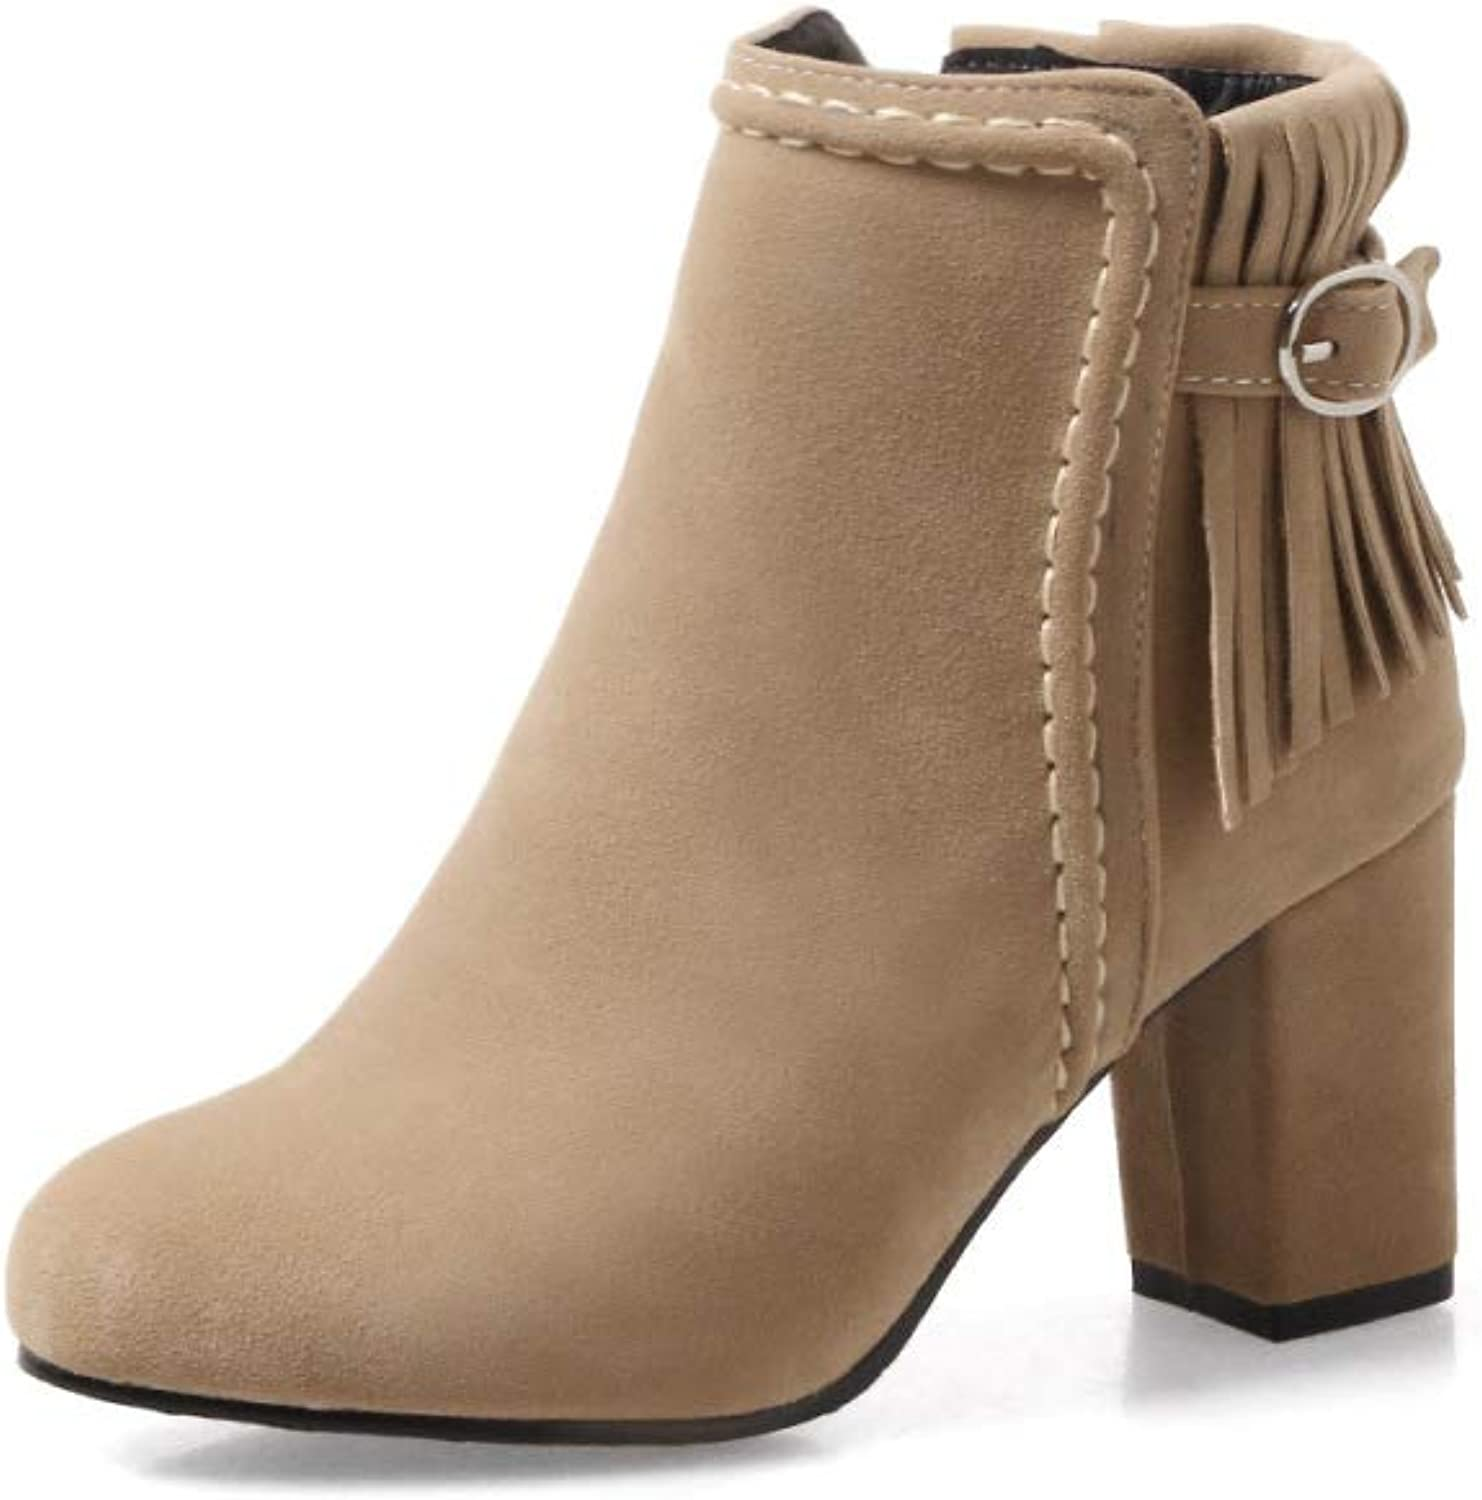 Women Fashion Simple Ankle Boots 2018 Winter New Tassel High Heel Boots Size 30-48,Camel,39